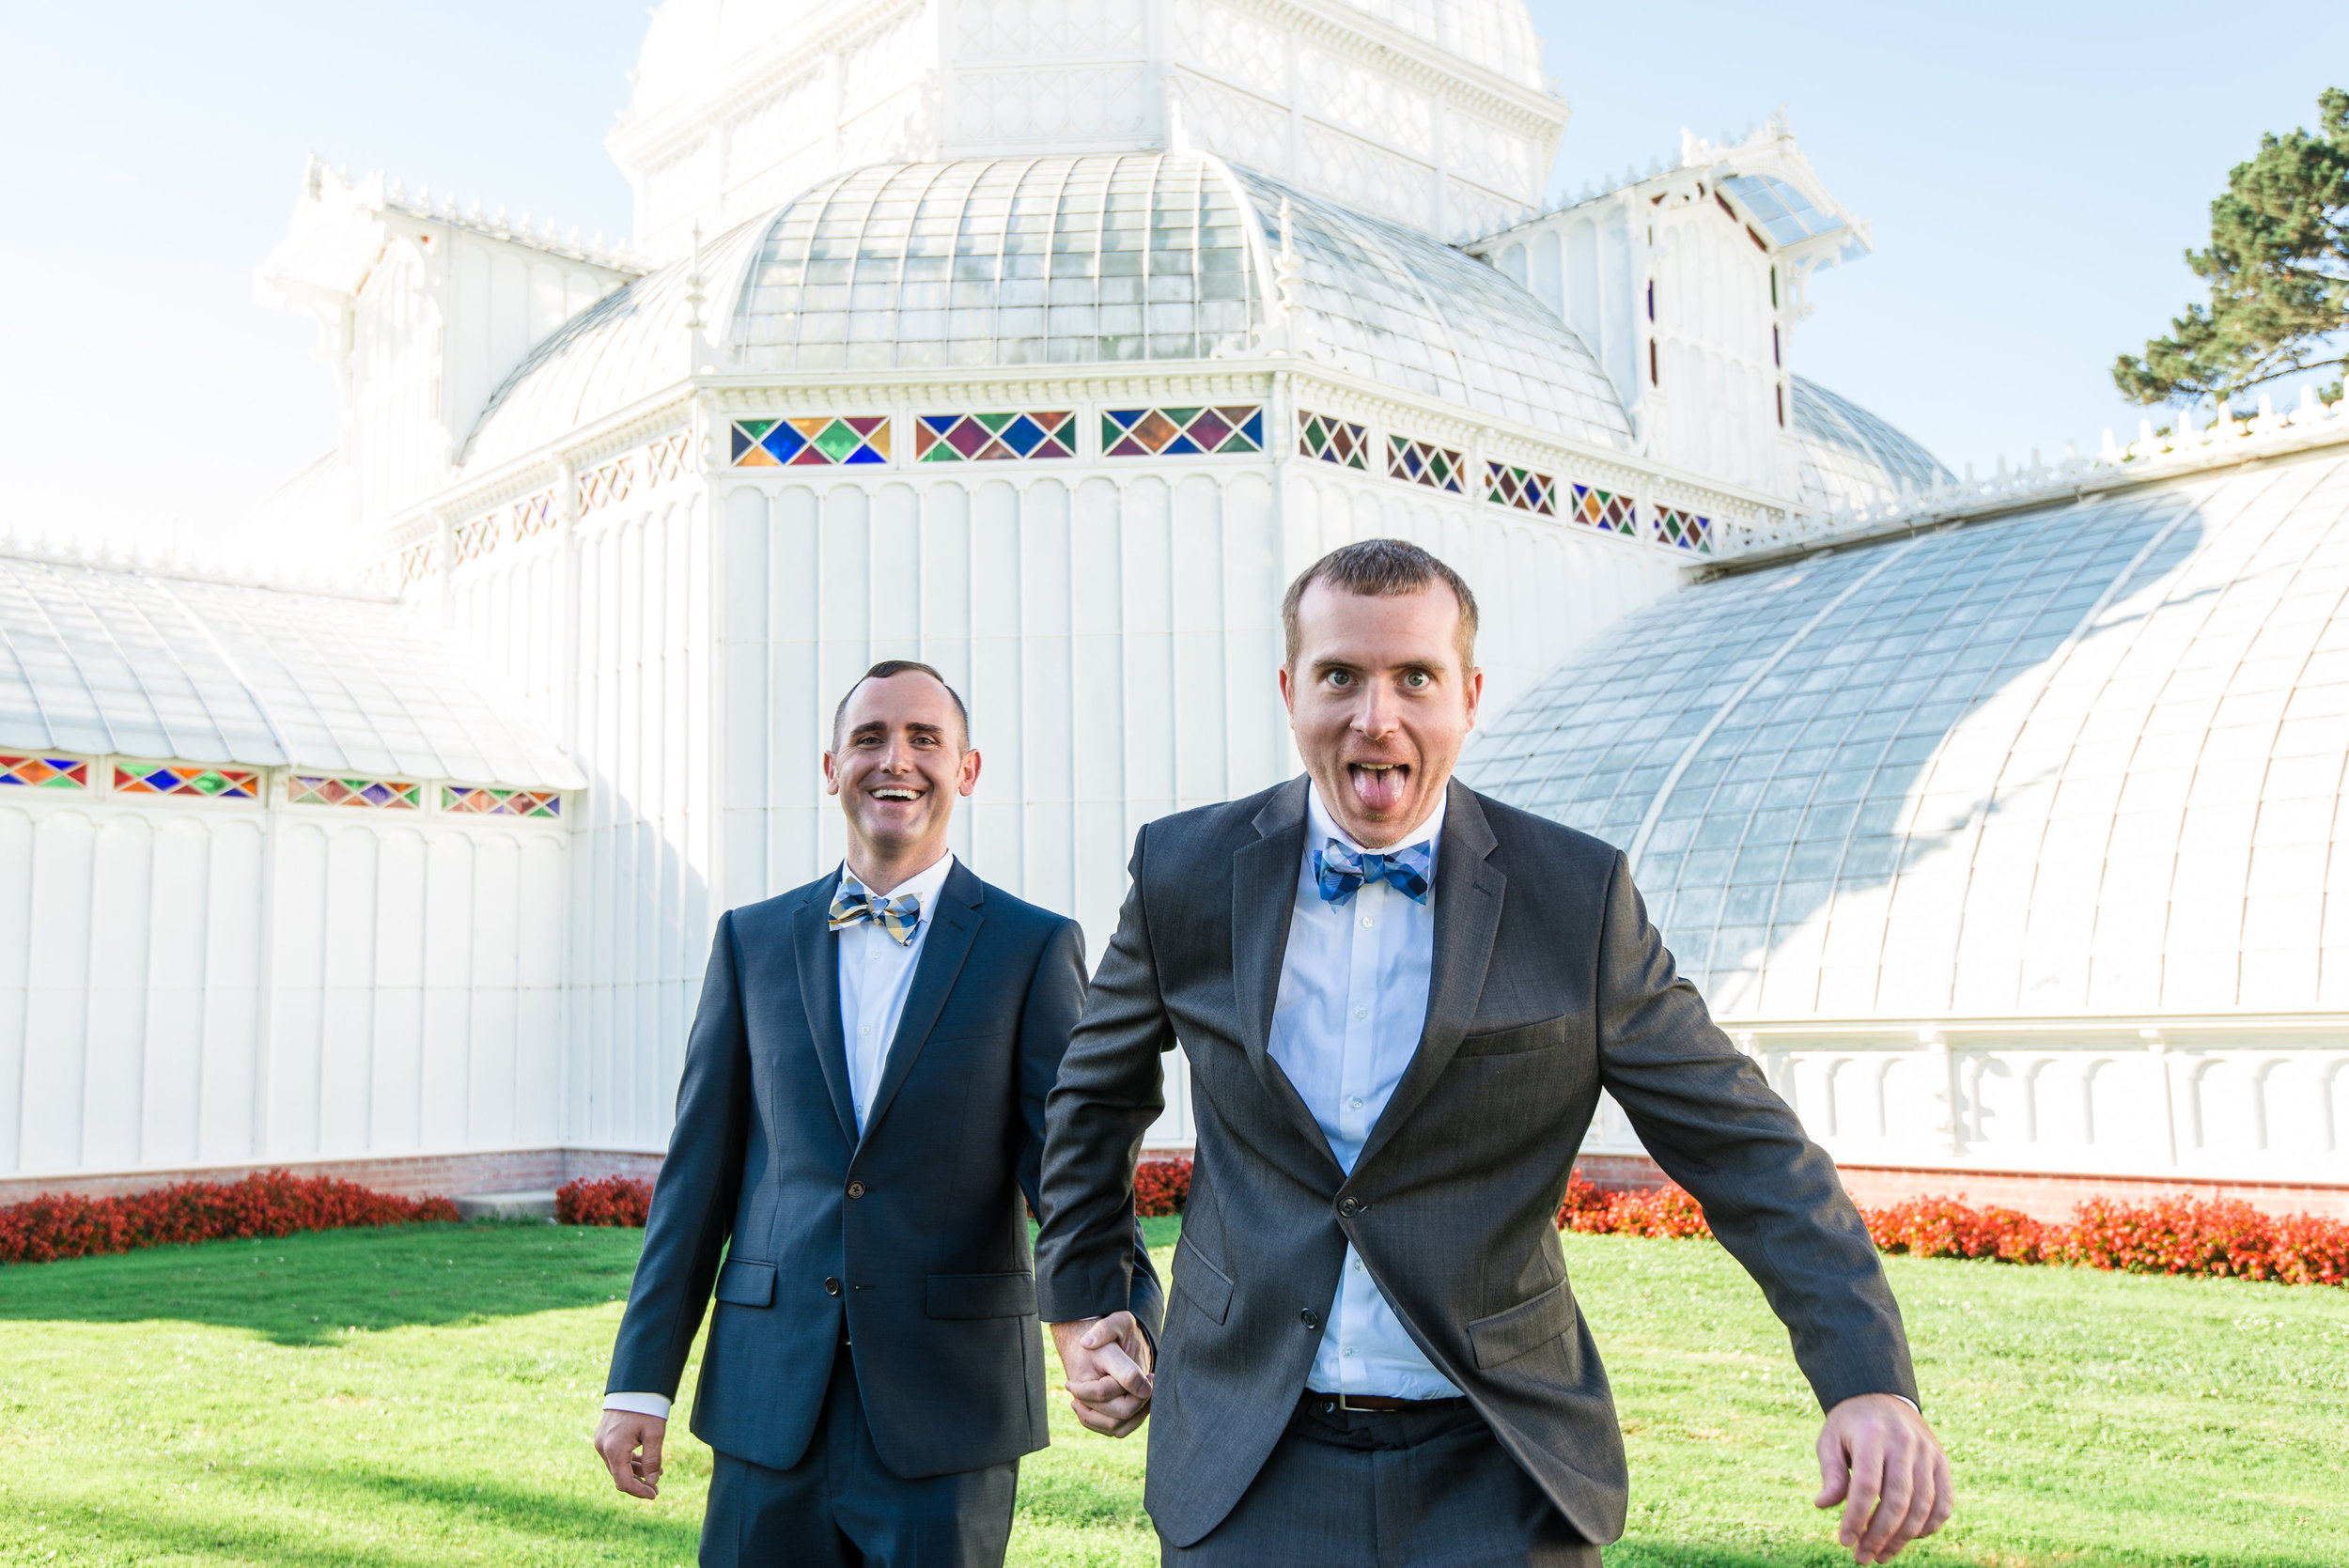 matt+nick-wedding-preview-33.jpg